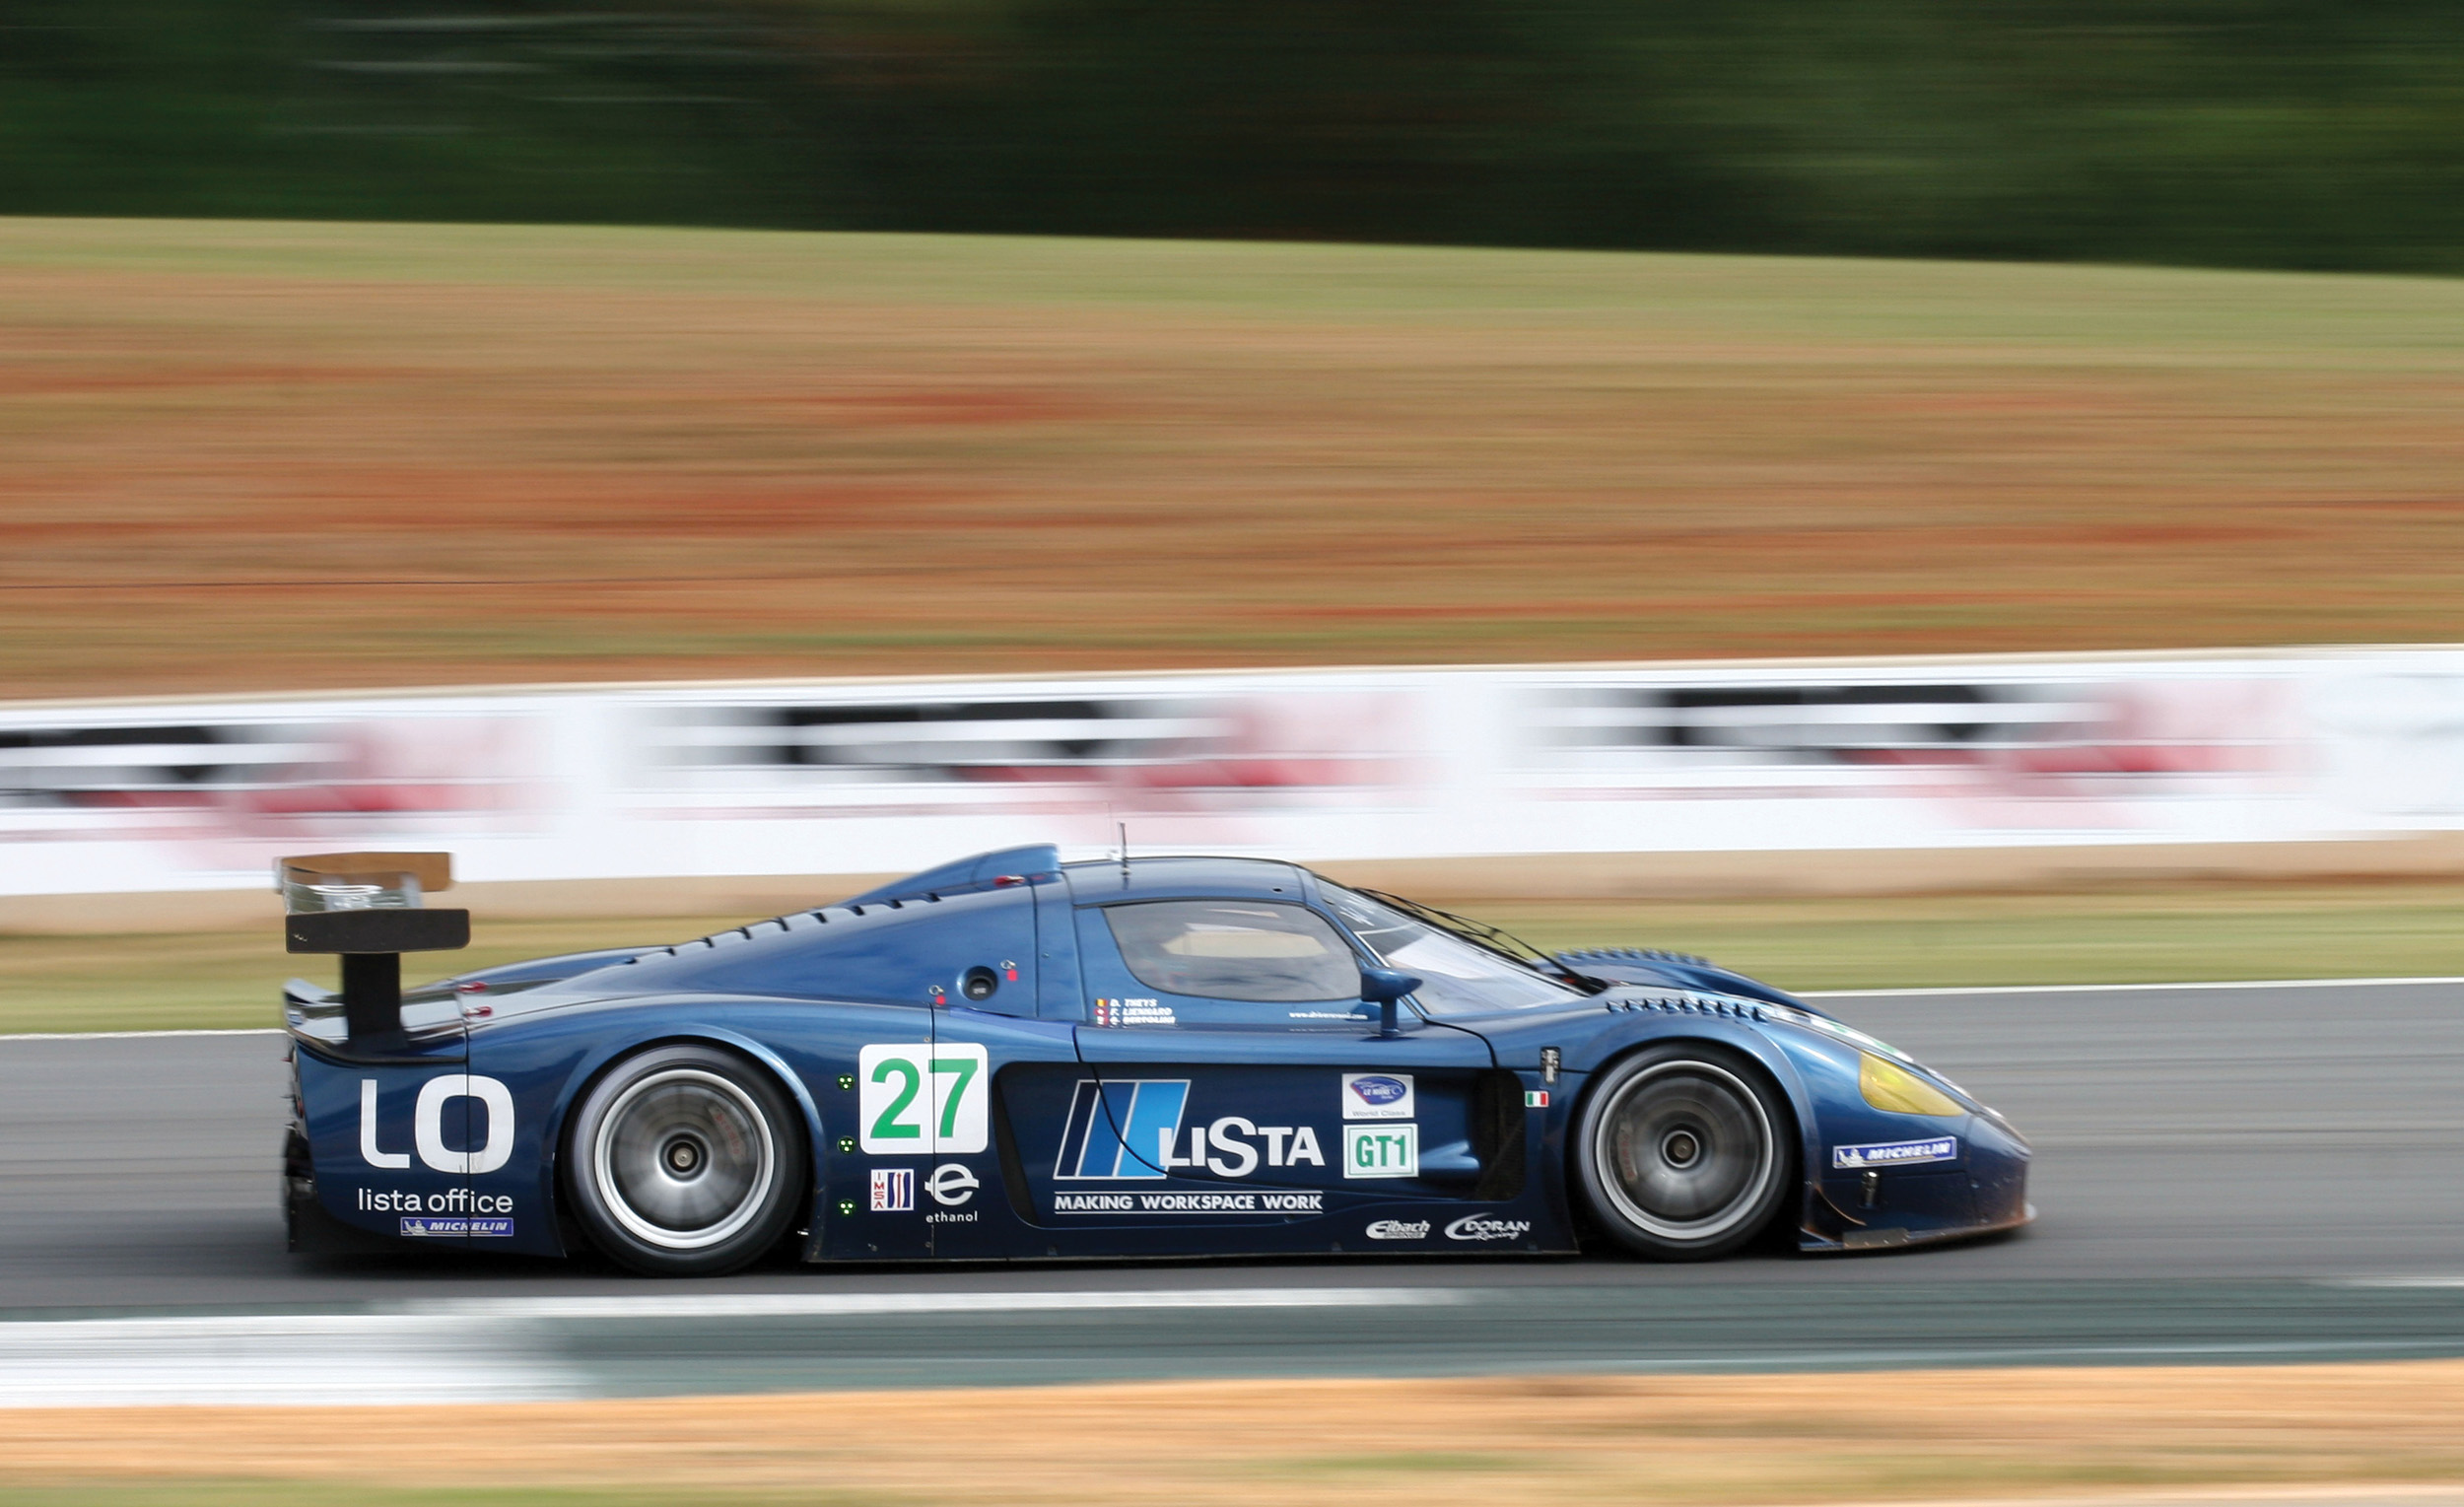 The MC12 at speed during the 2007 ALMS Petit Le Mans (Credit - Courtesy of Motorsport Images)